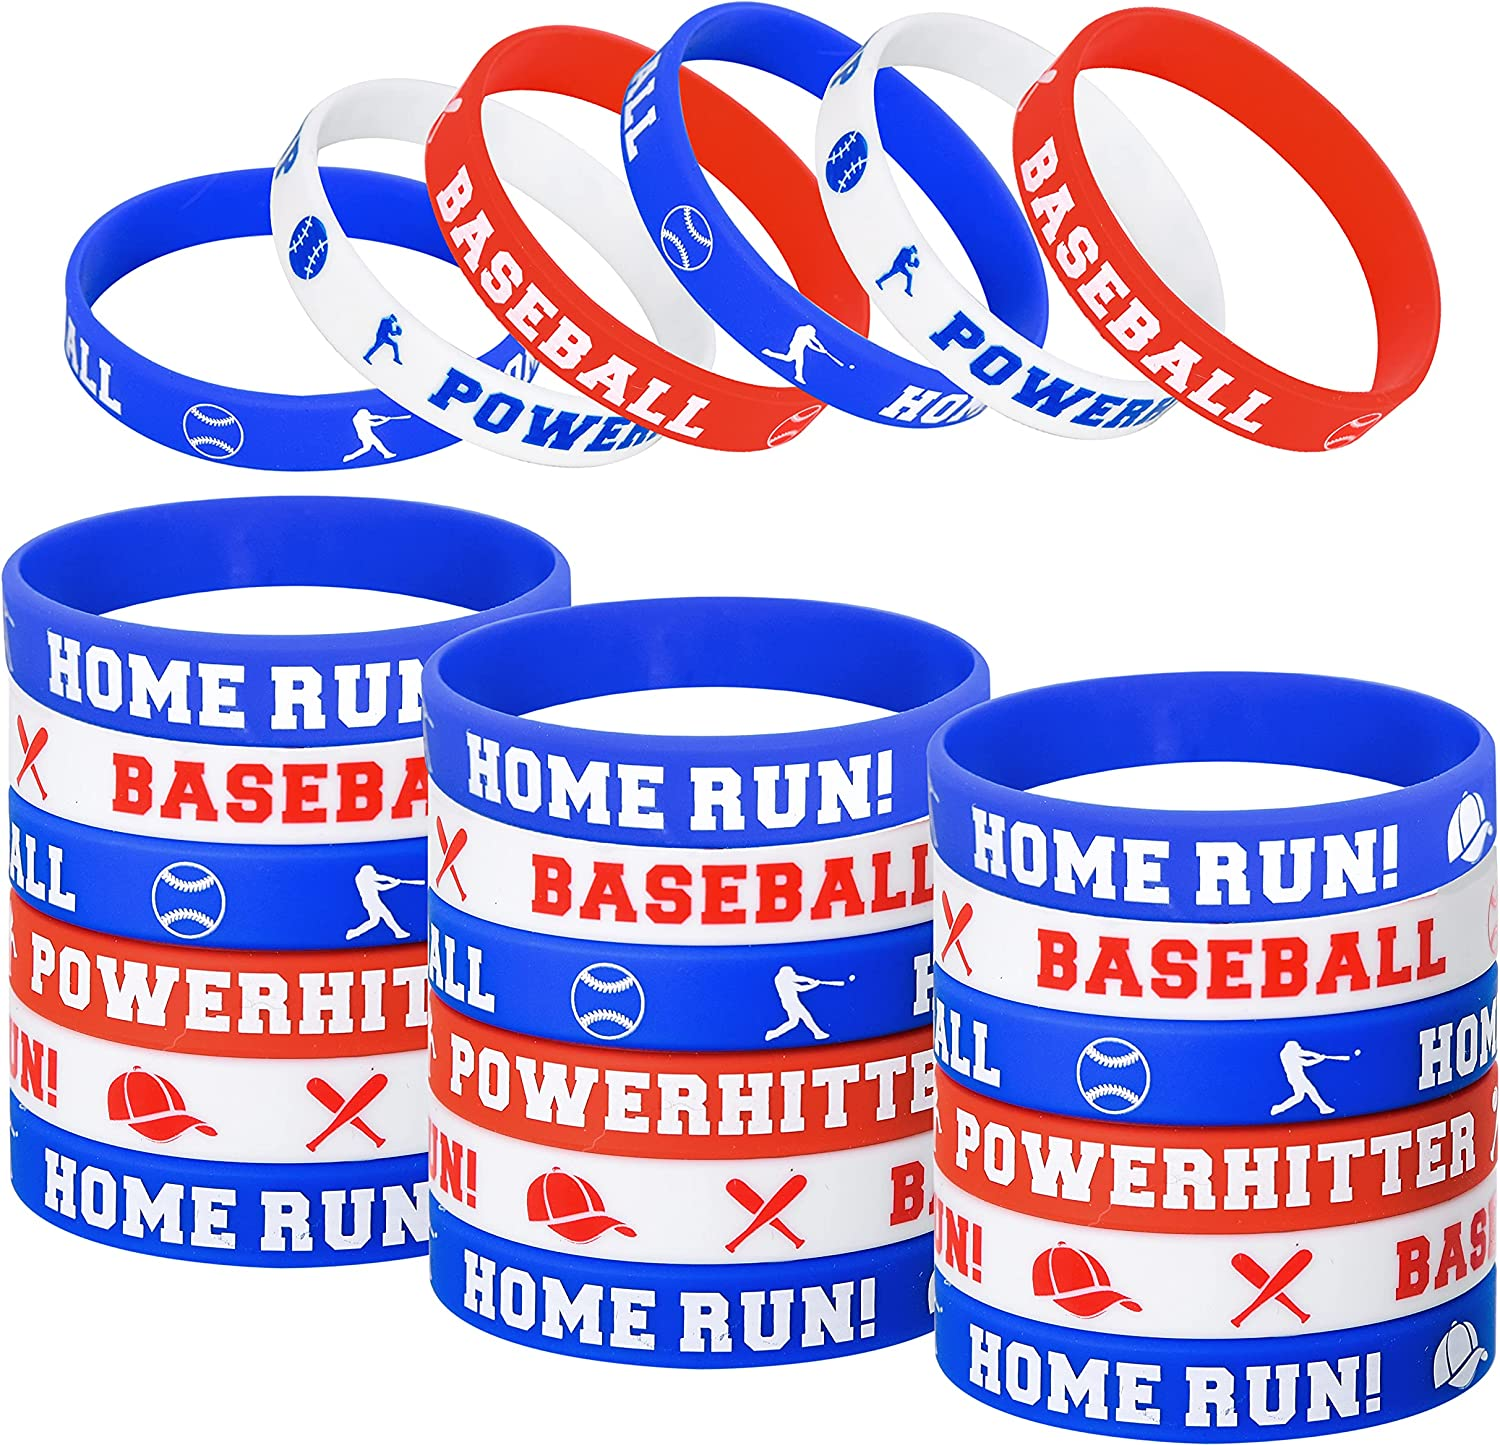 Baseball Party Favors 24 Pcs Baseball Theme Silicone Bracelets Stretch Rubber Wristband for Sport Themed Baseball Game Birthday Party Favors Decorations Supplies